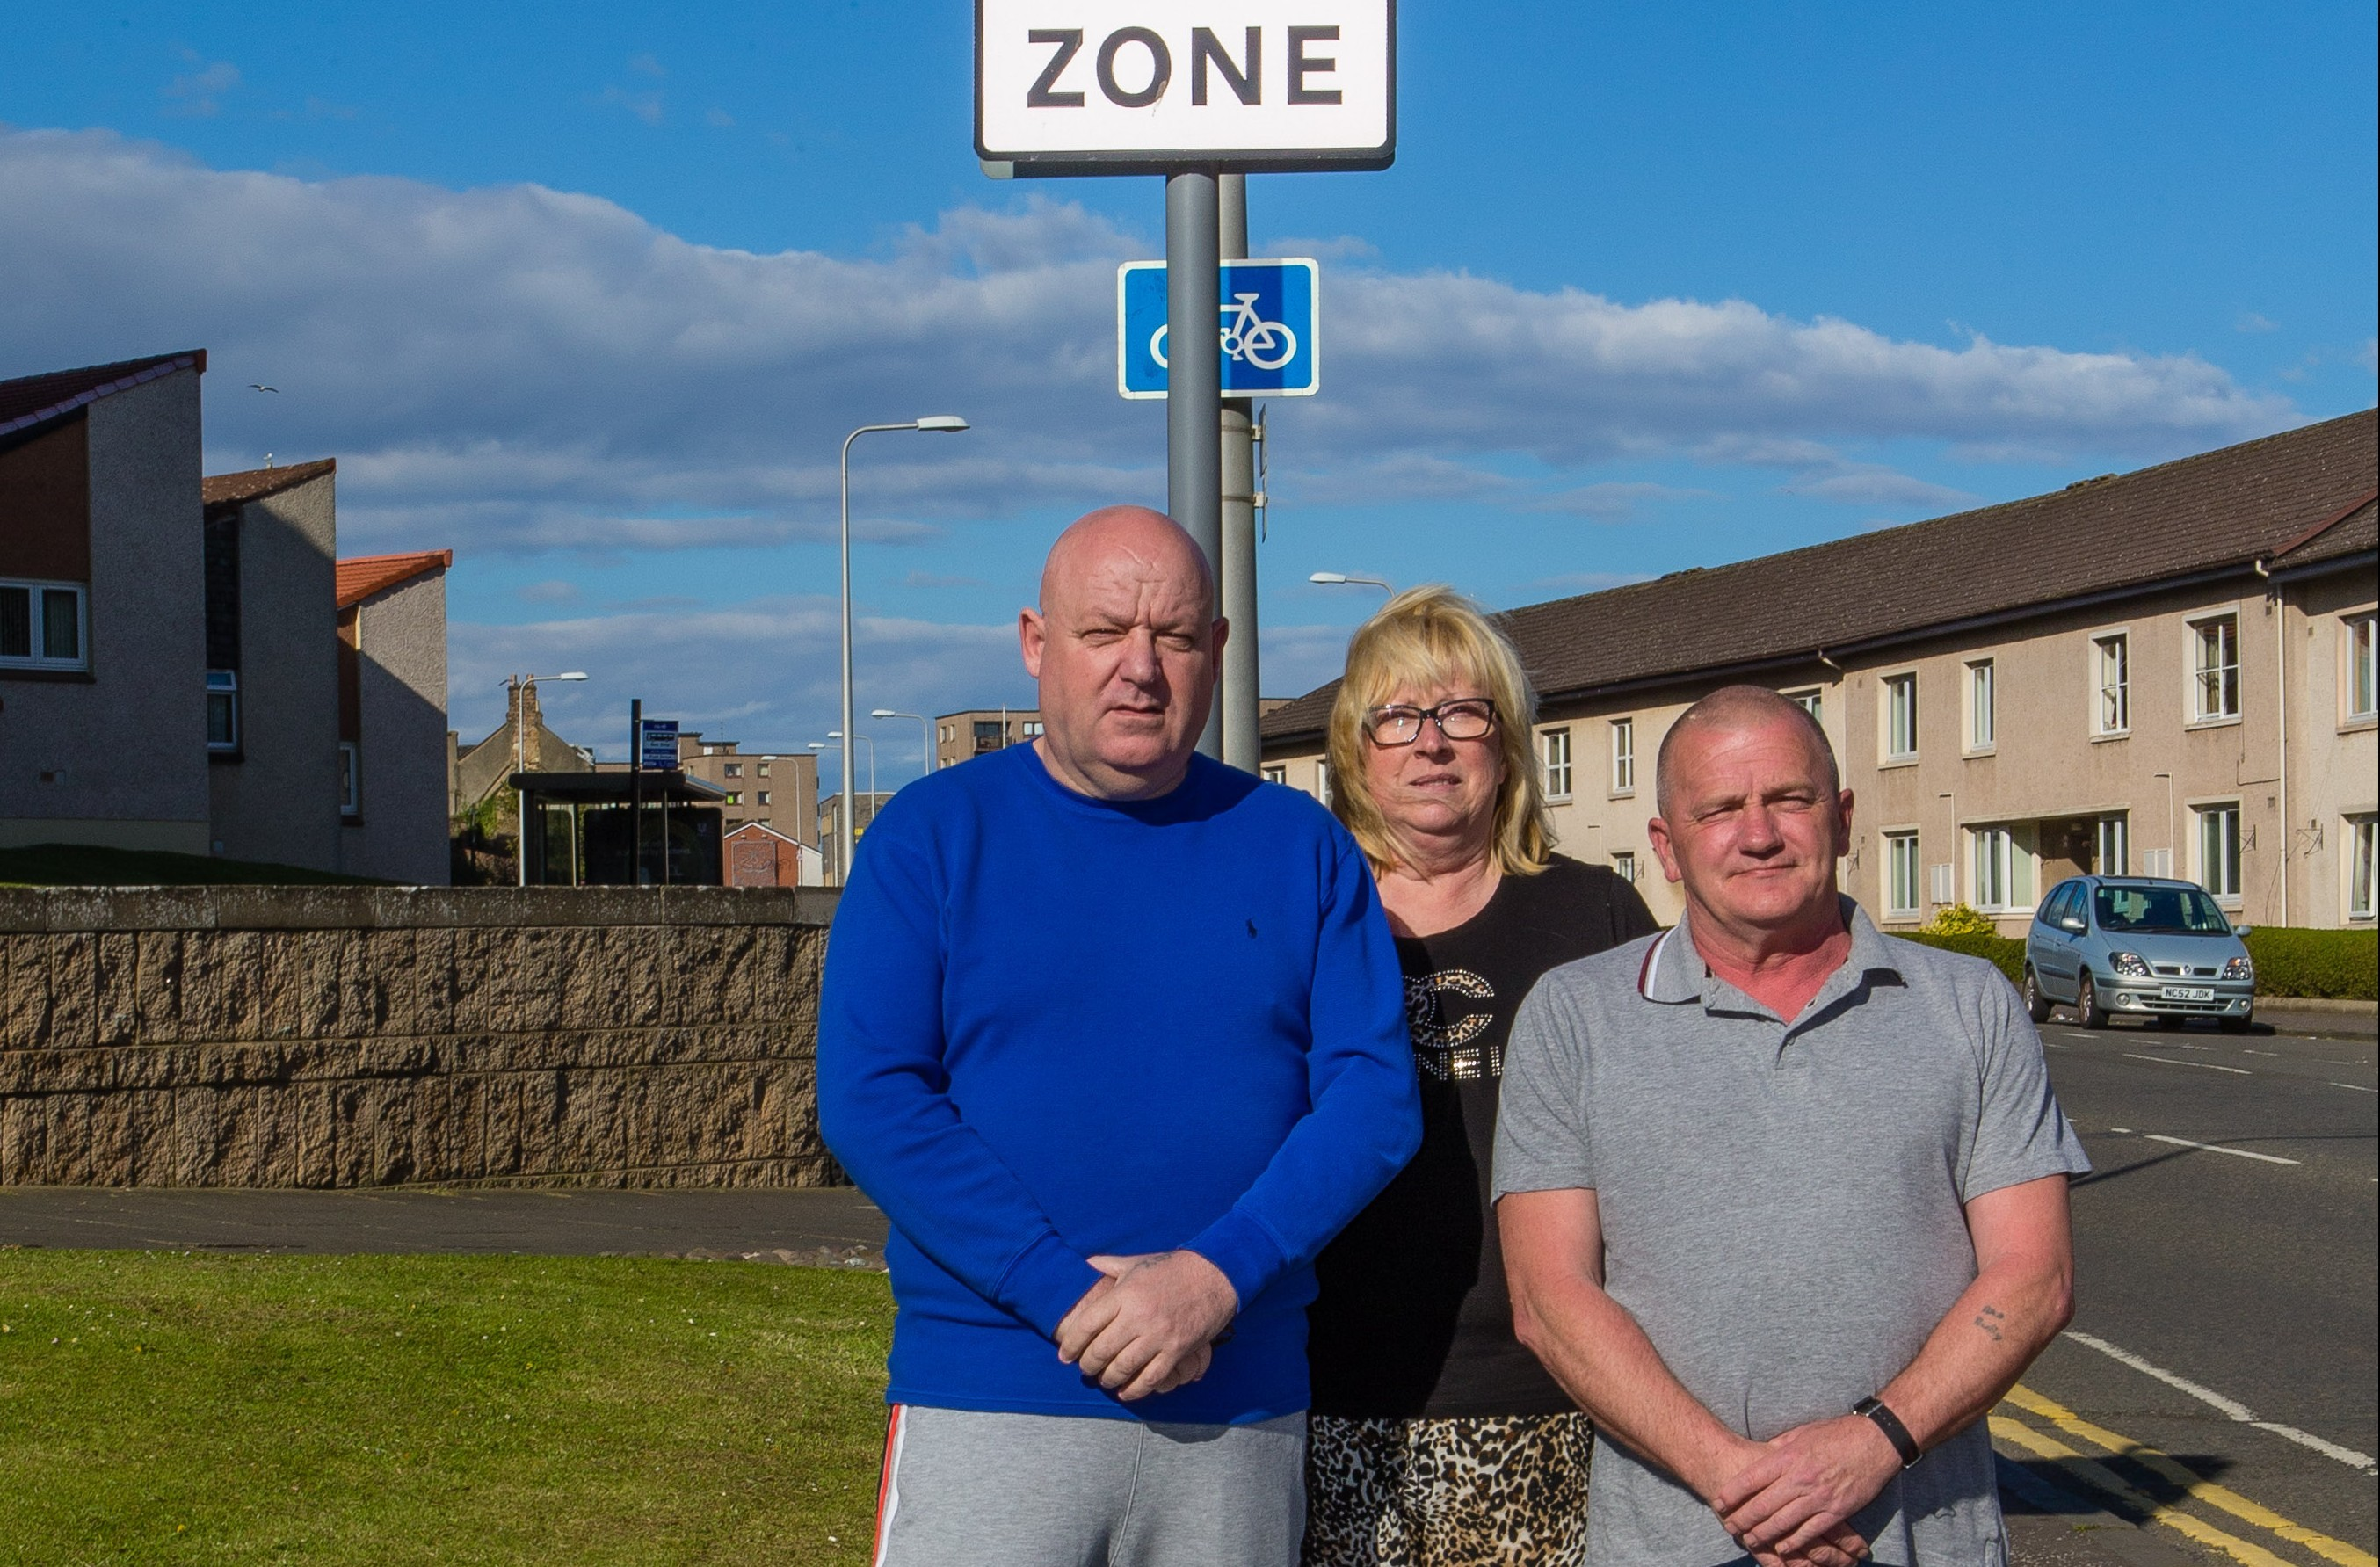 Locals Shane Halstead, Marie Erke and Rab O'Donnell are among those who want better policing and security at future Links Markets.